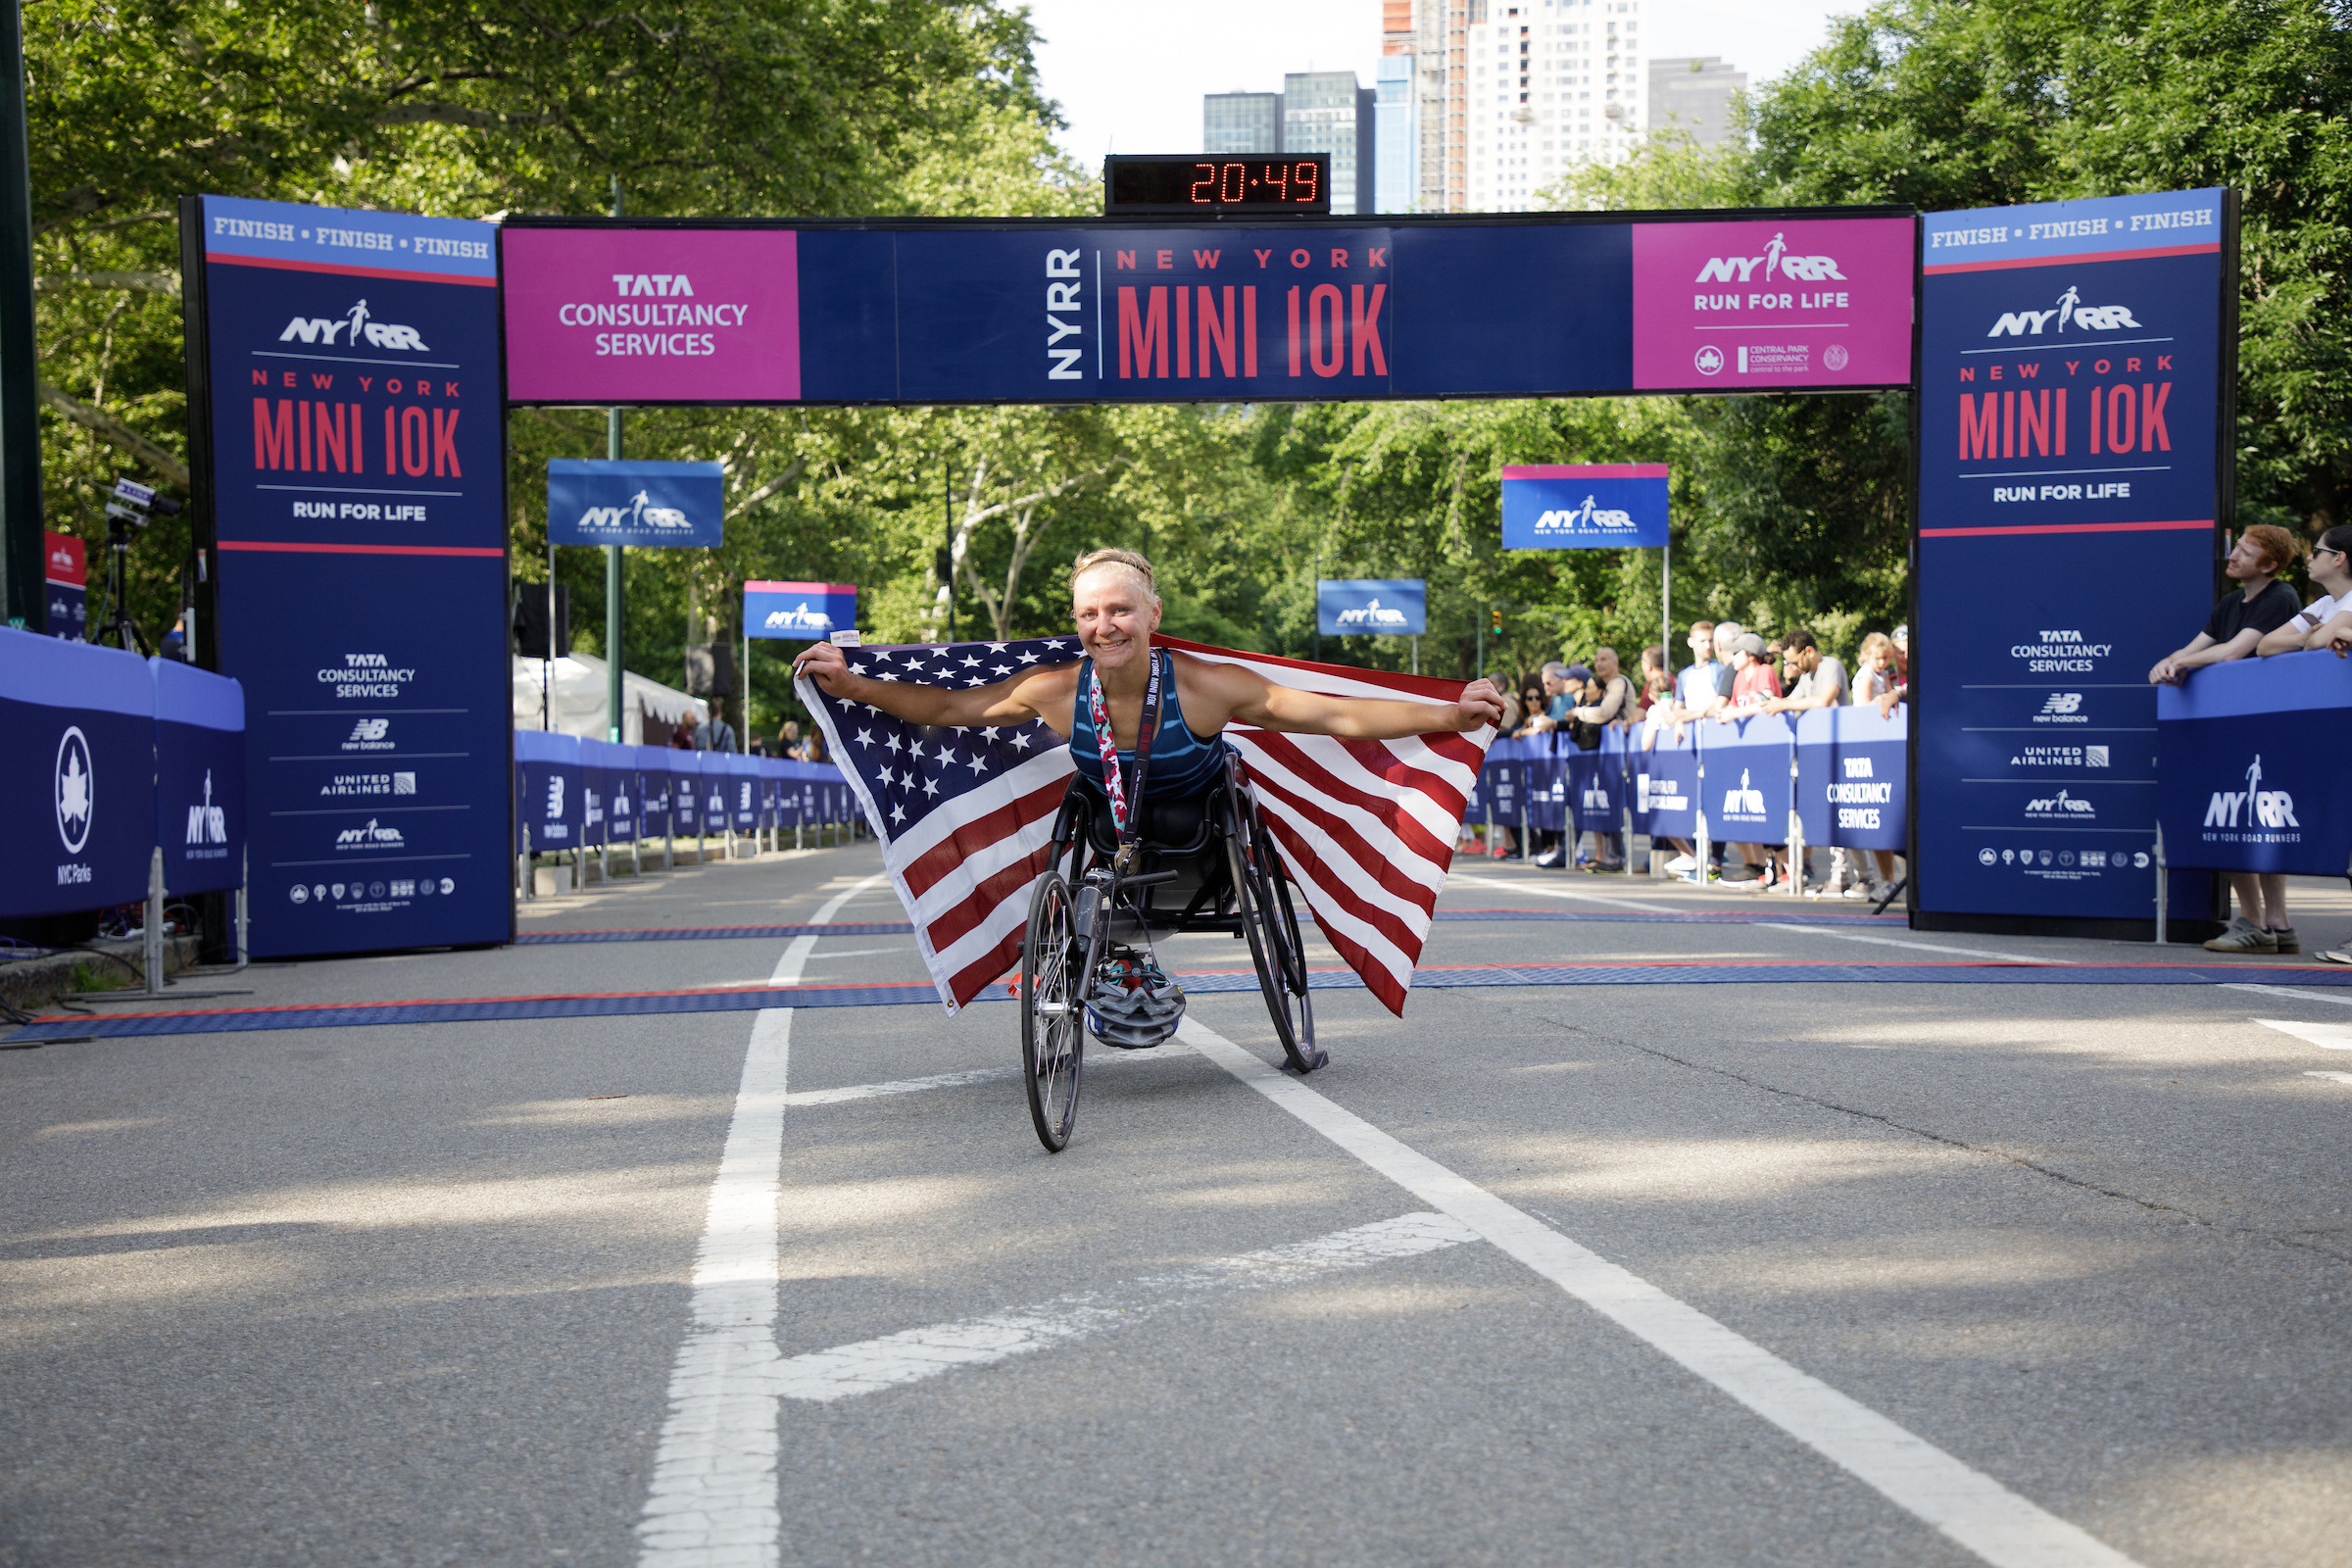 Susannah Scaroni after winning the 2018 New York Mini 10K holding the USA flag.